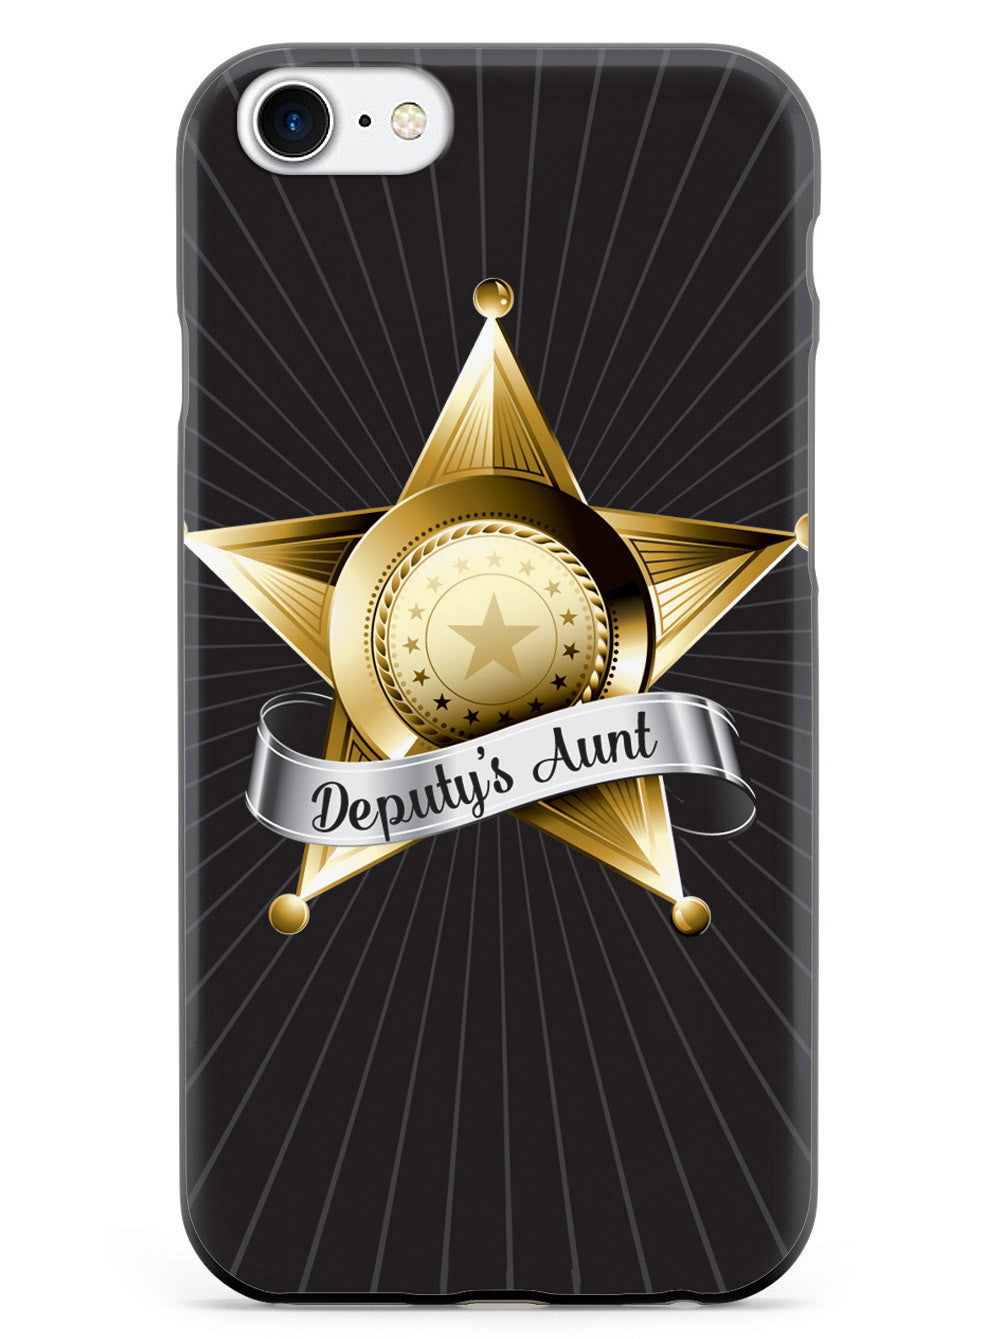 Deputy's Aunt Badge  Case